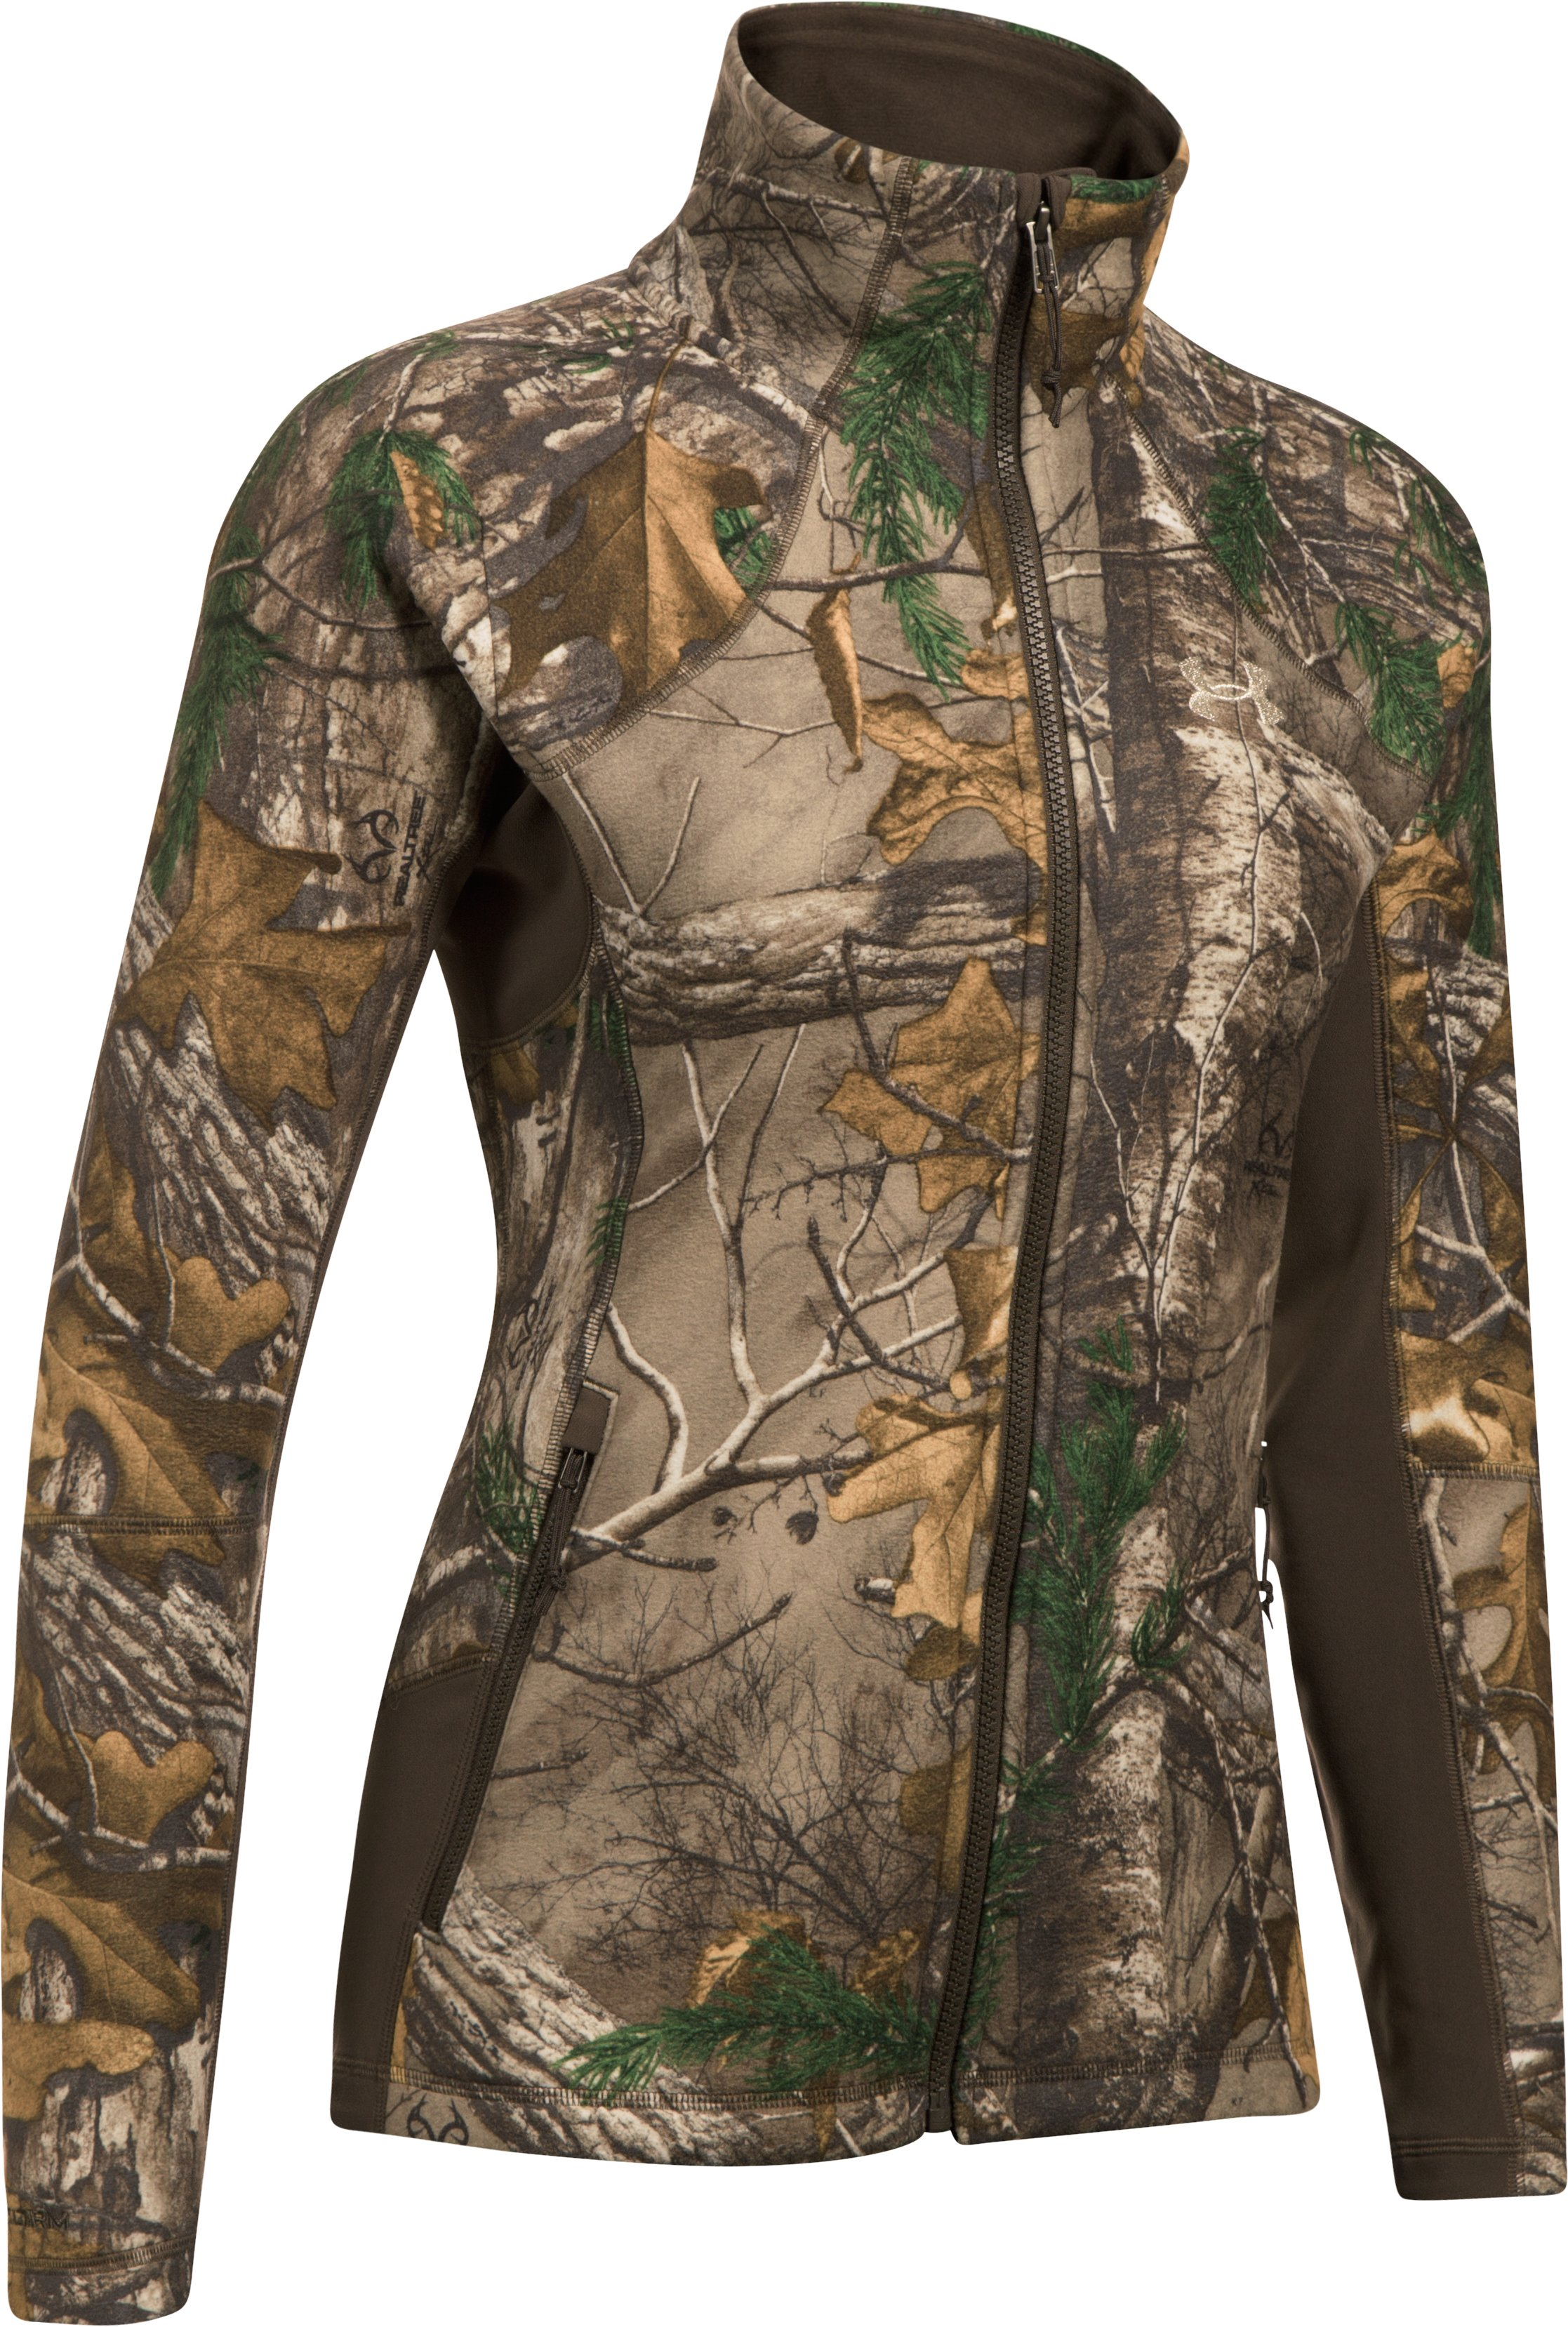 Women's UA Mid Season Jacket, REALTREE AP-XTRA,